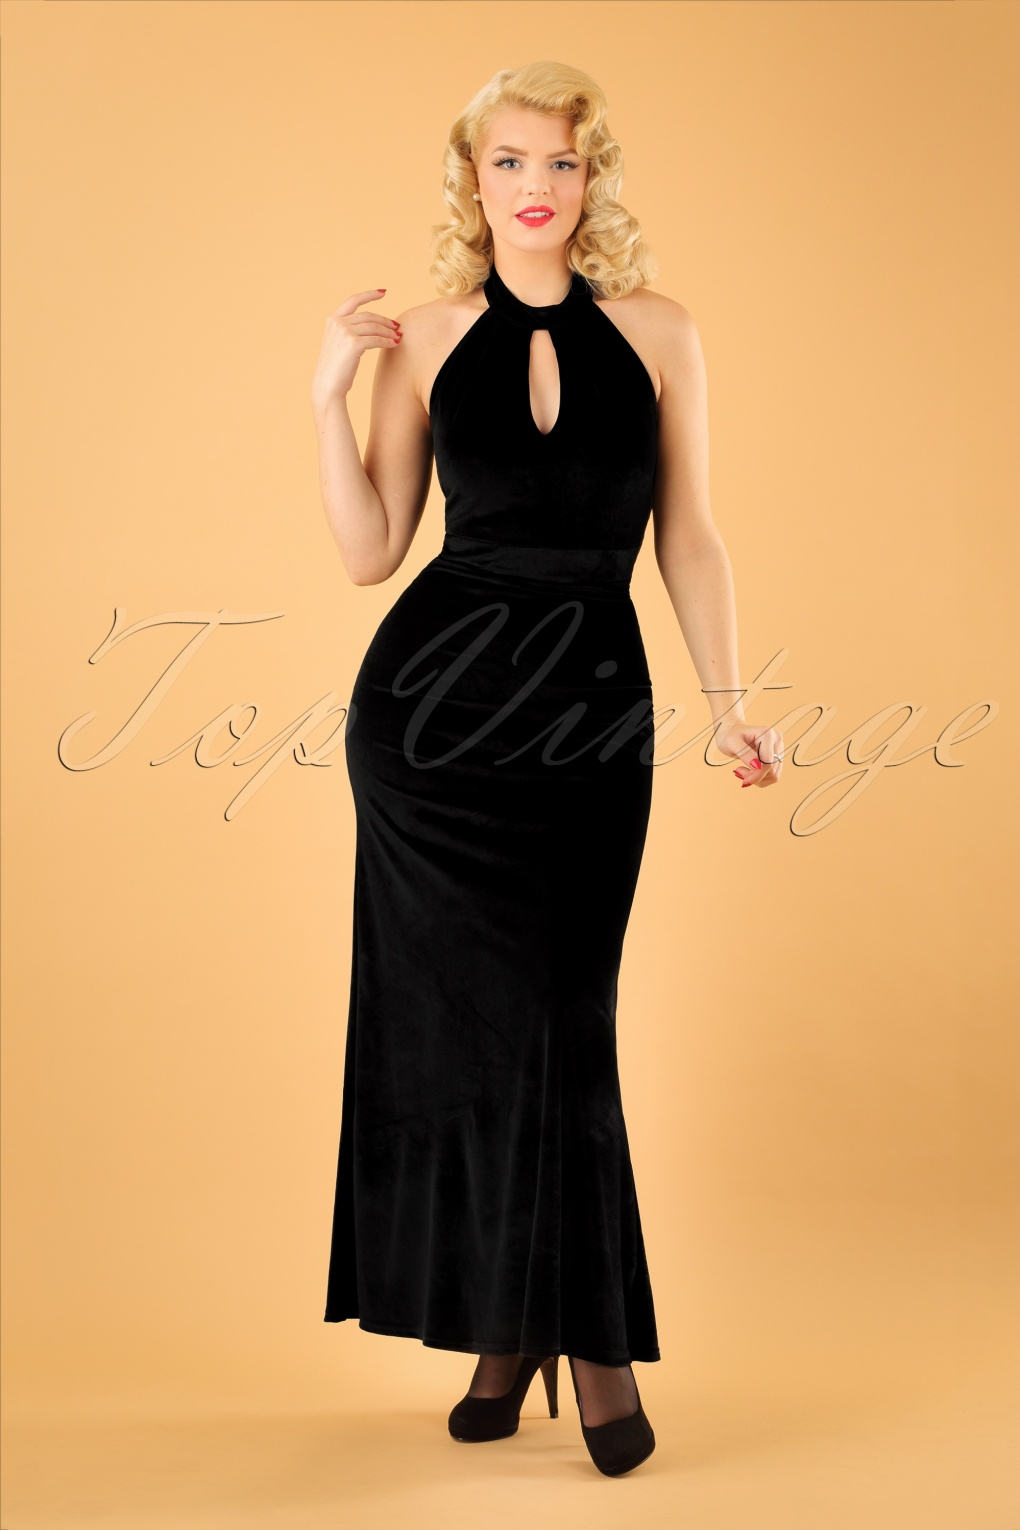 1950s Prom Dresses & Party Dresses 50s Eleanor Halter Maxi Dress in Black Velvet £57.41 AT vintagedancer.com